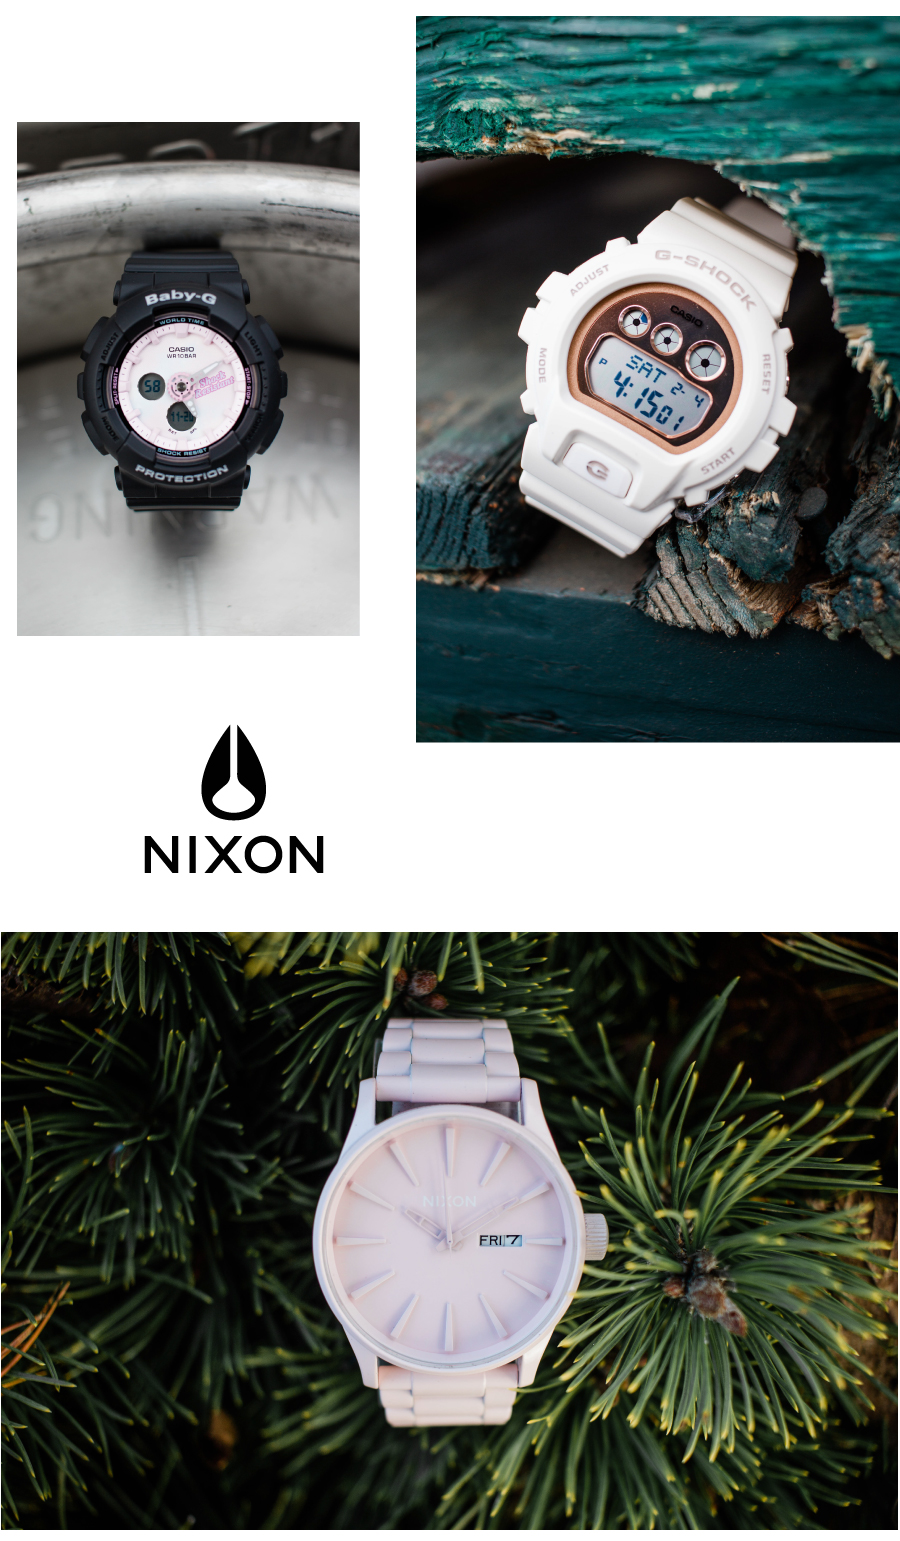 G-Shock and Nixon watches